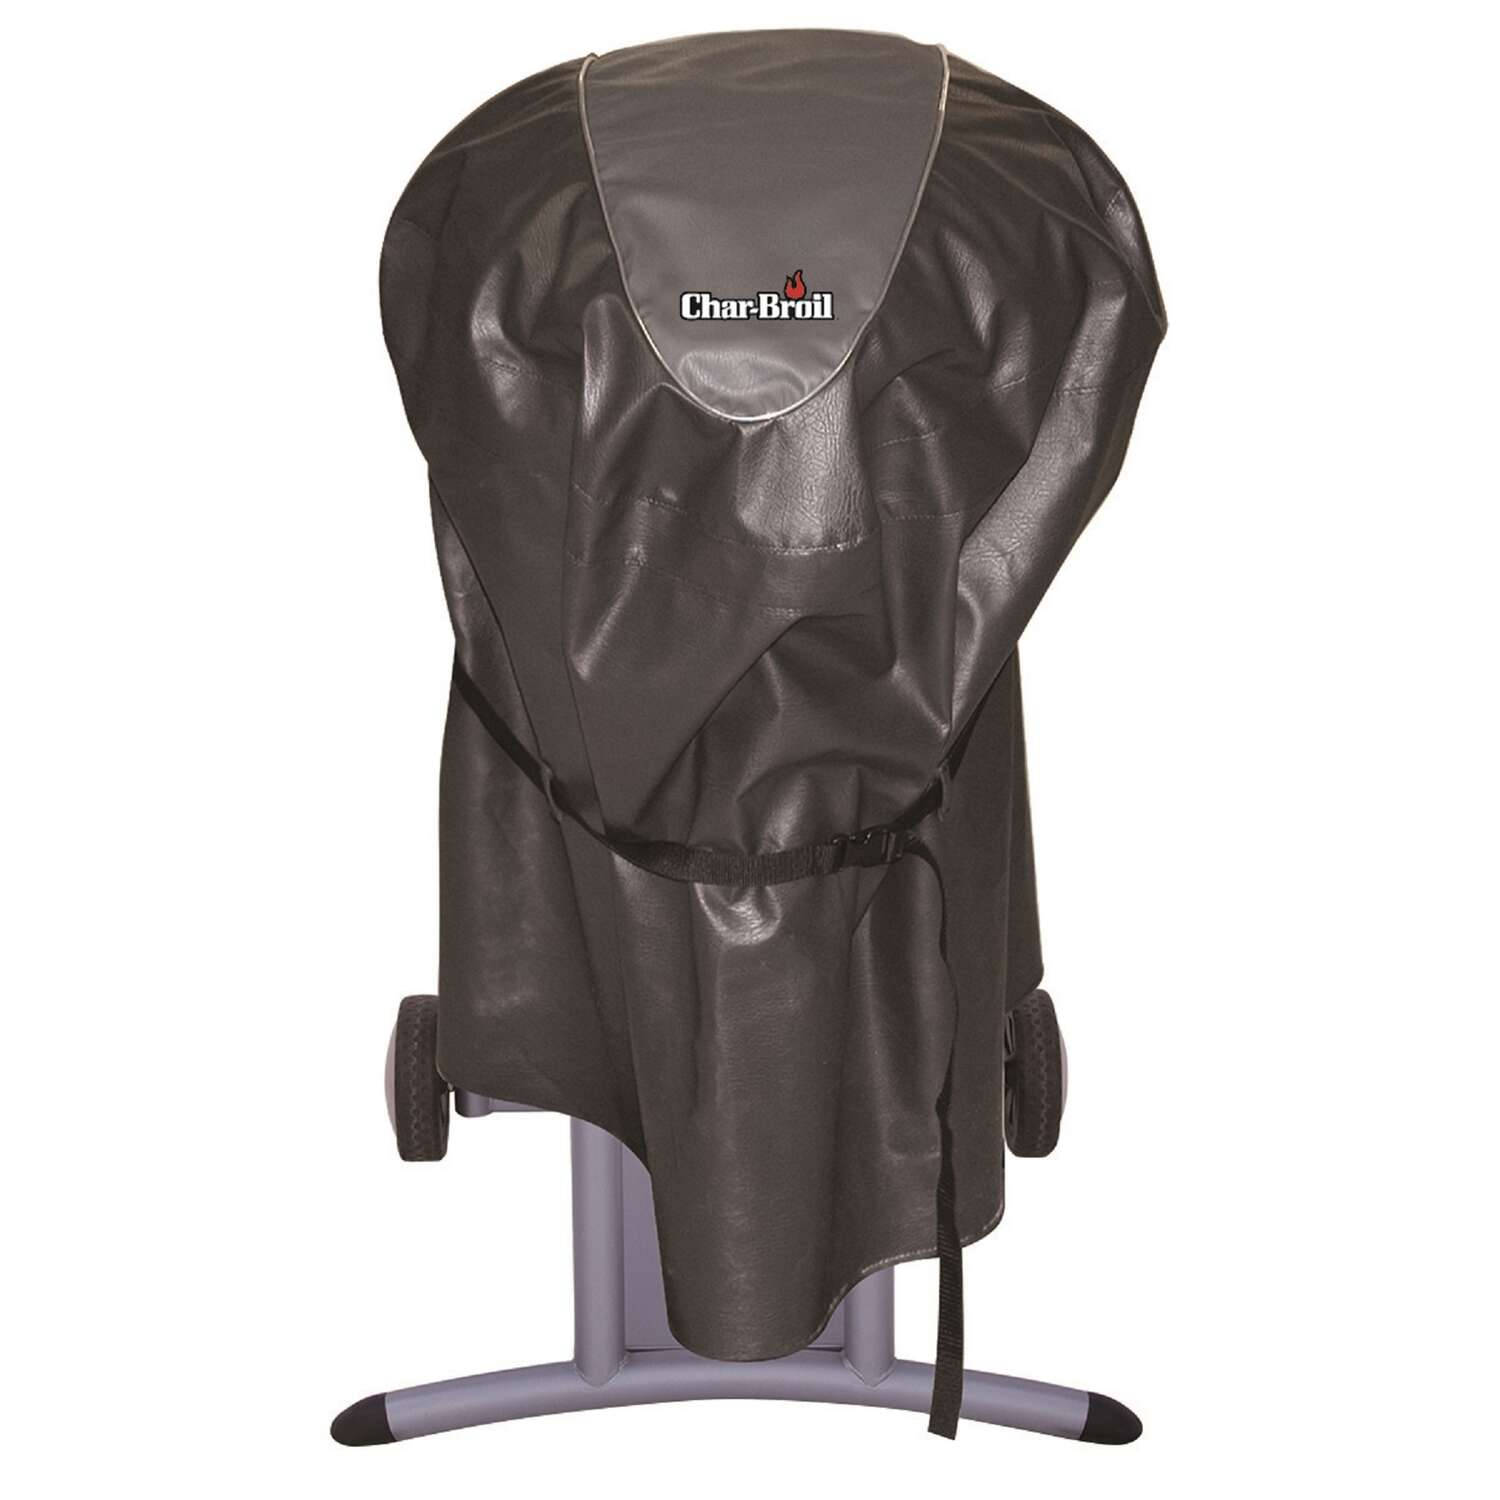 Char Broil Black Grill Cover 26 In D X W